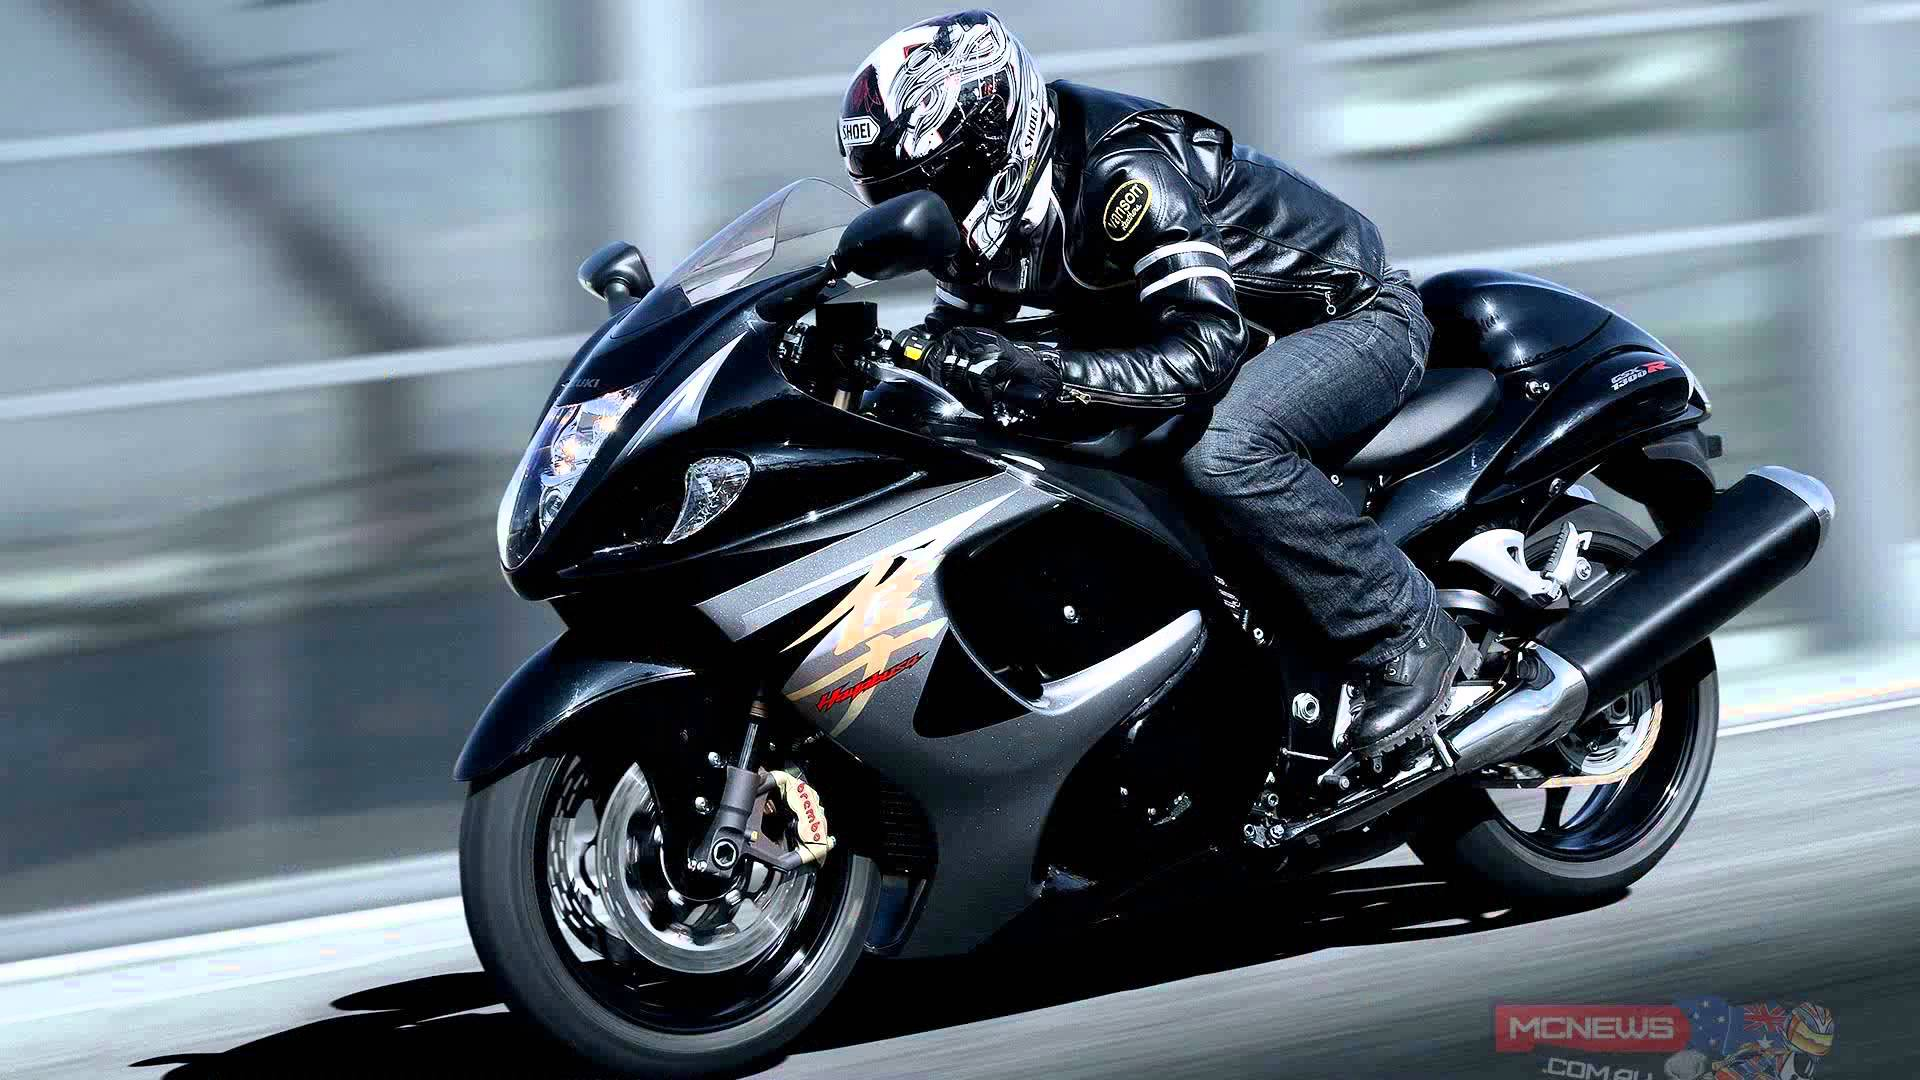 2014 Suzuki Hayabusa Photos, Informations, Articles - Bikes